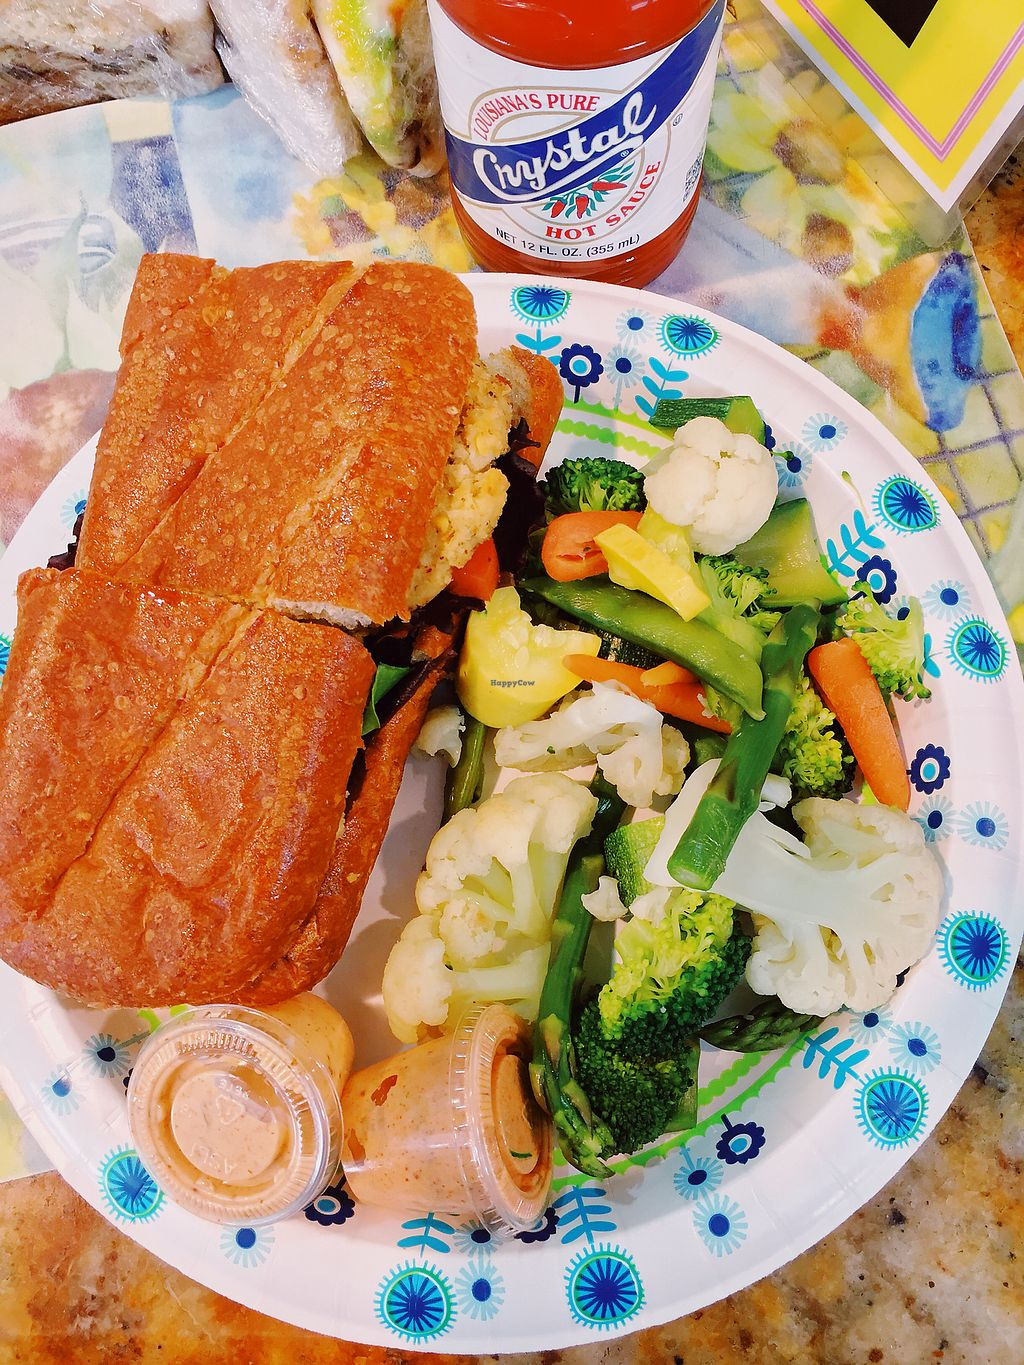 """Photo of Meals From The Heart Cafe  by <a href=""""/members/profile/terrywashere"""">terrywashere</a> <br/>vegan crab cake po boy.  <br/> March 2, 2018  - <a href='/contact/abuse/image/25883/365914'>Report</a>"""